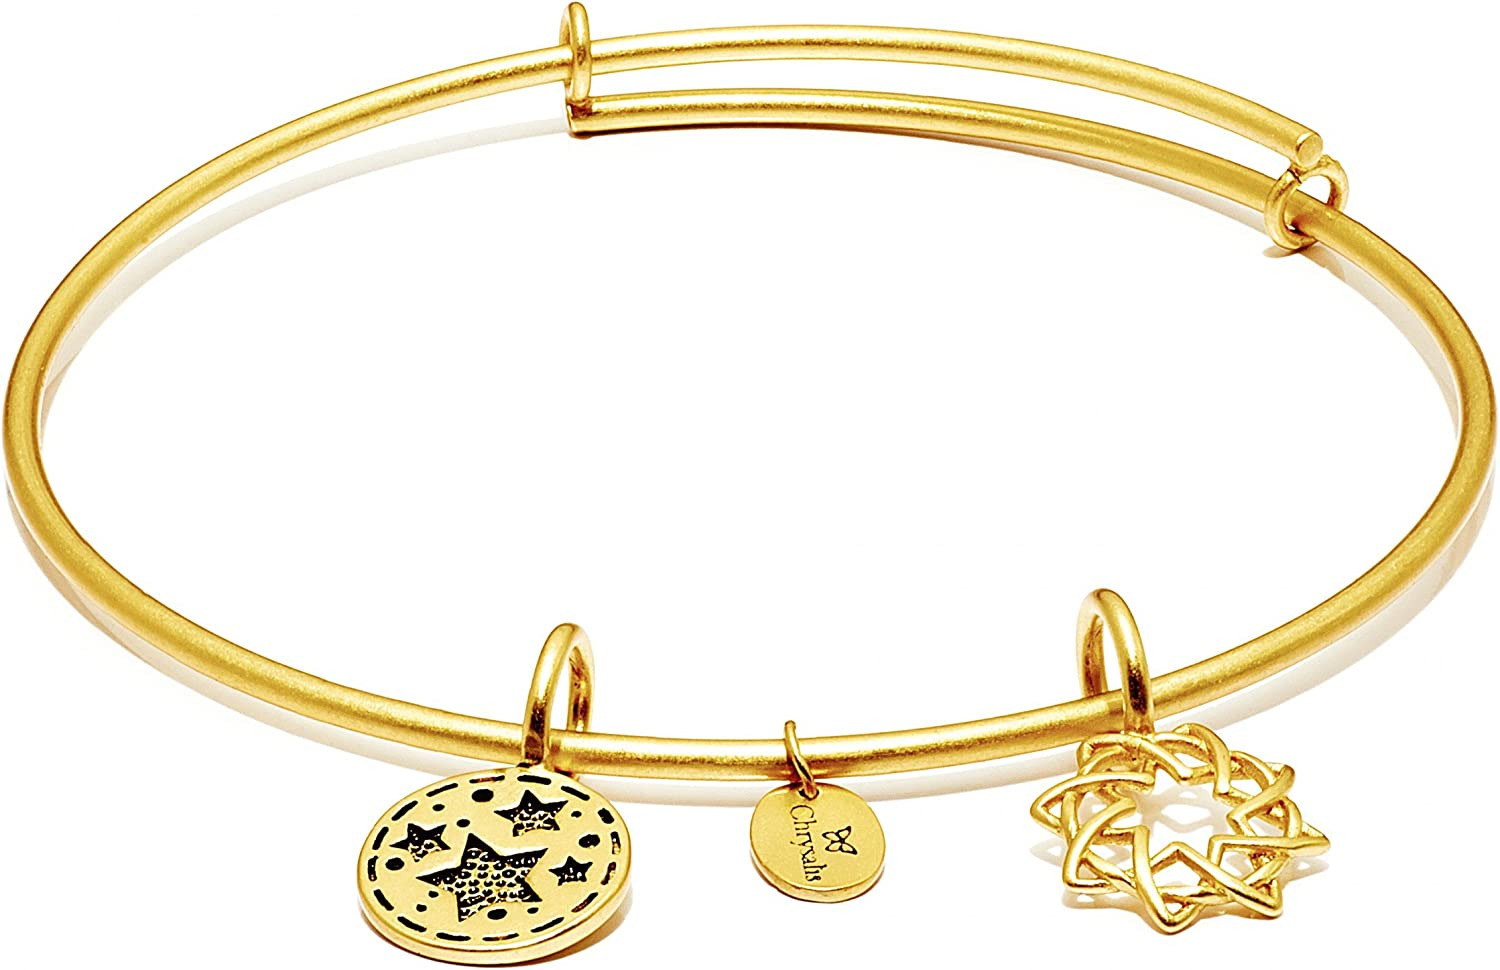 Chrysalis Expandable 'Redemption' Bangle Bracelet in 14K Gold-Plated Brass